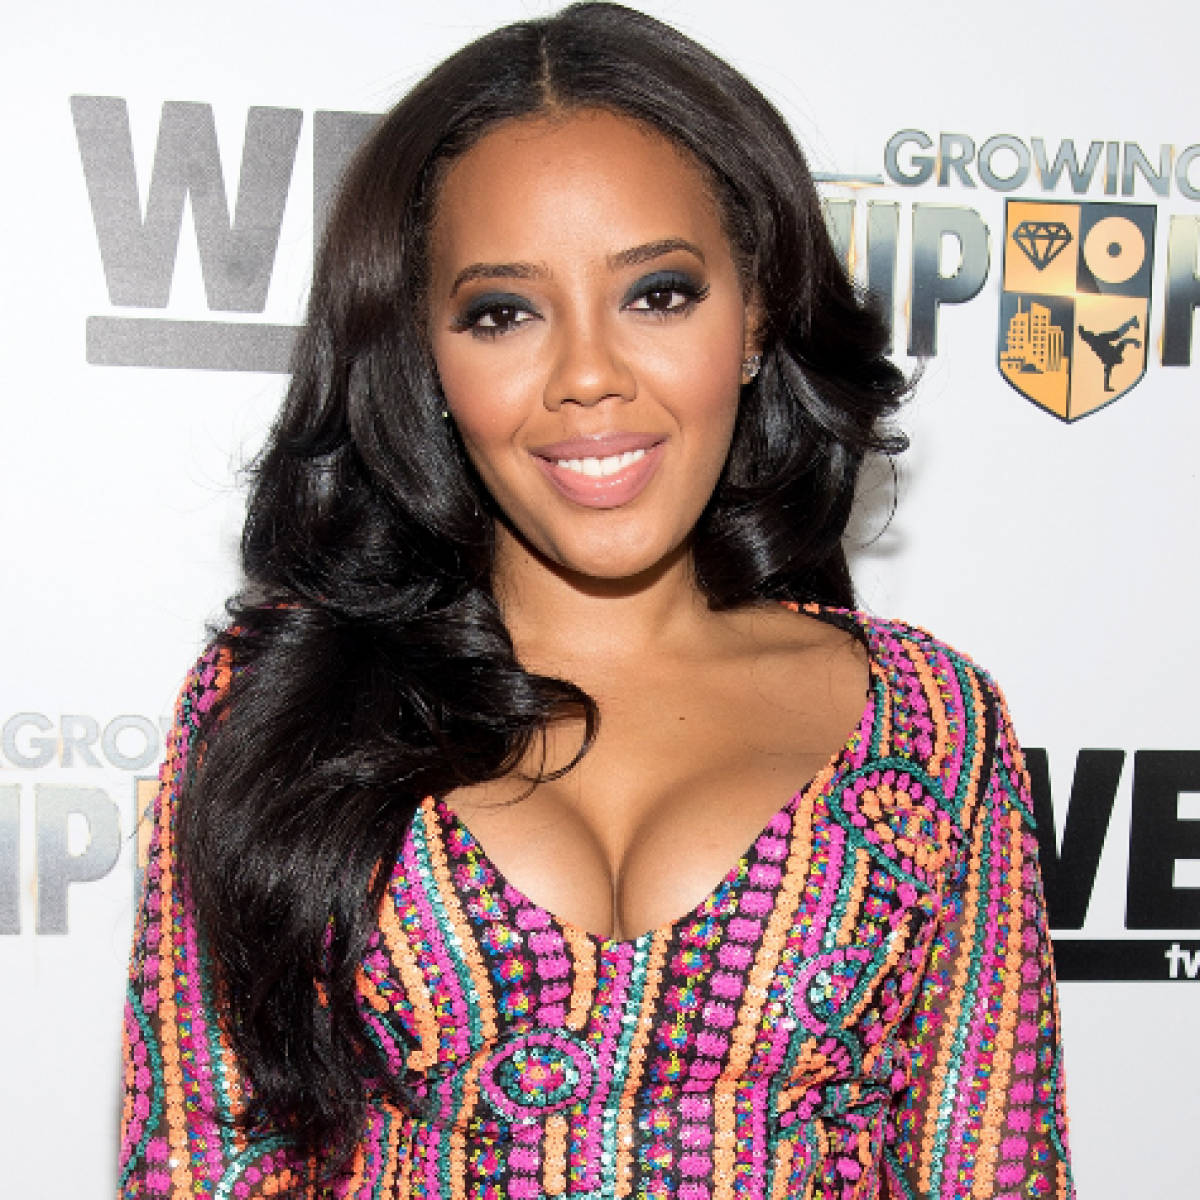 'Growing Up Hip Hop' Star Angela Simmons Just Announced Some Big Beauty News